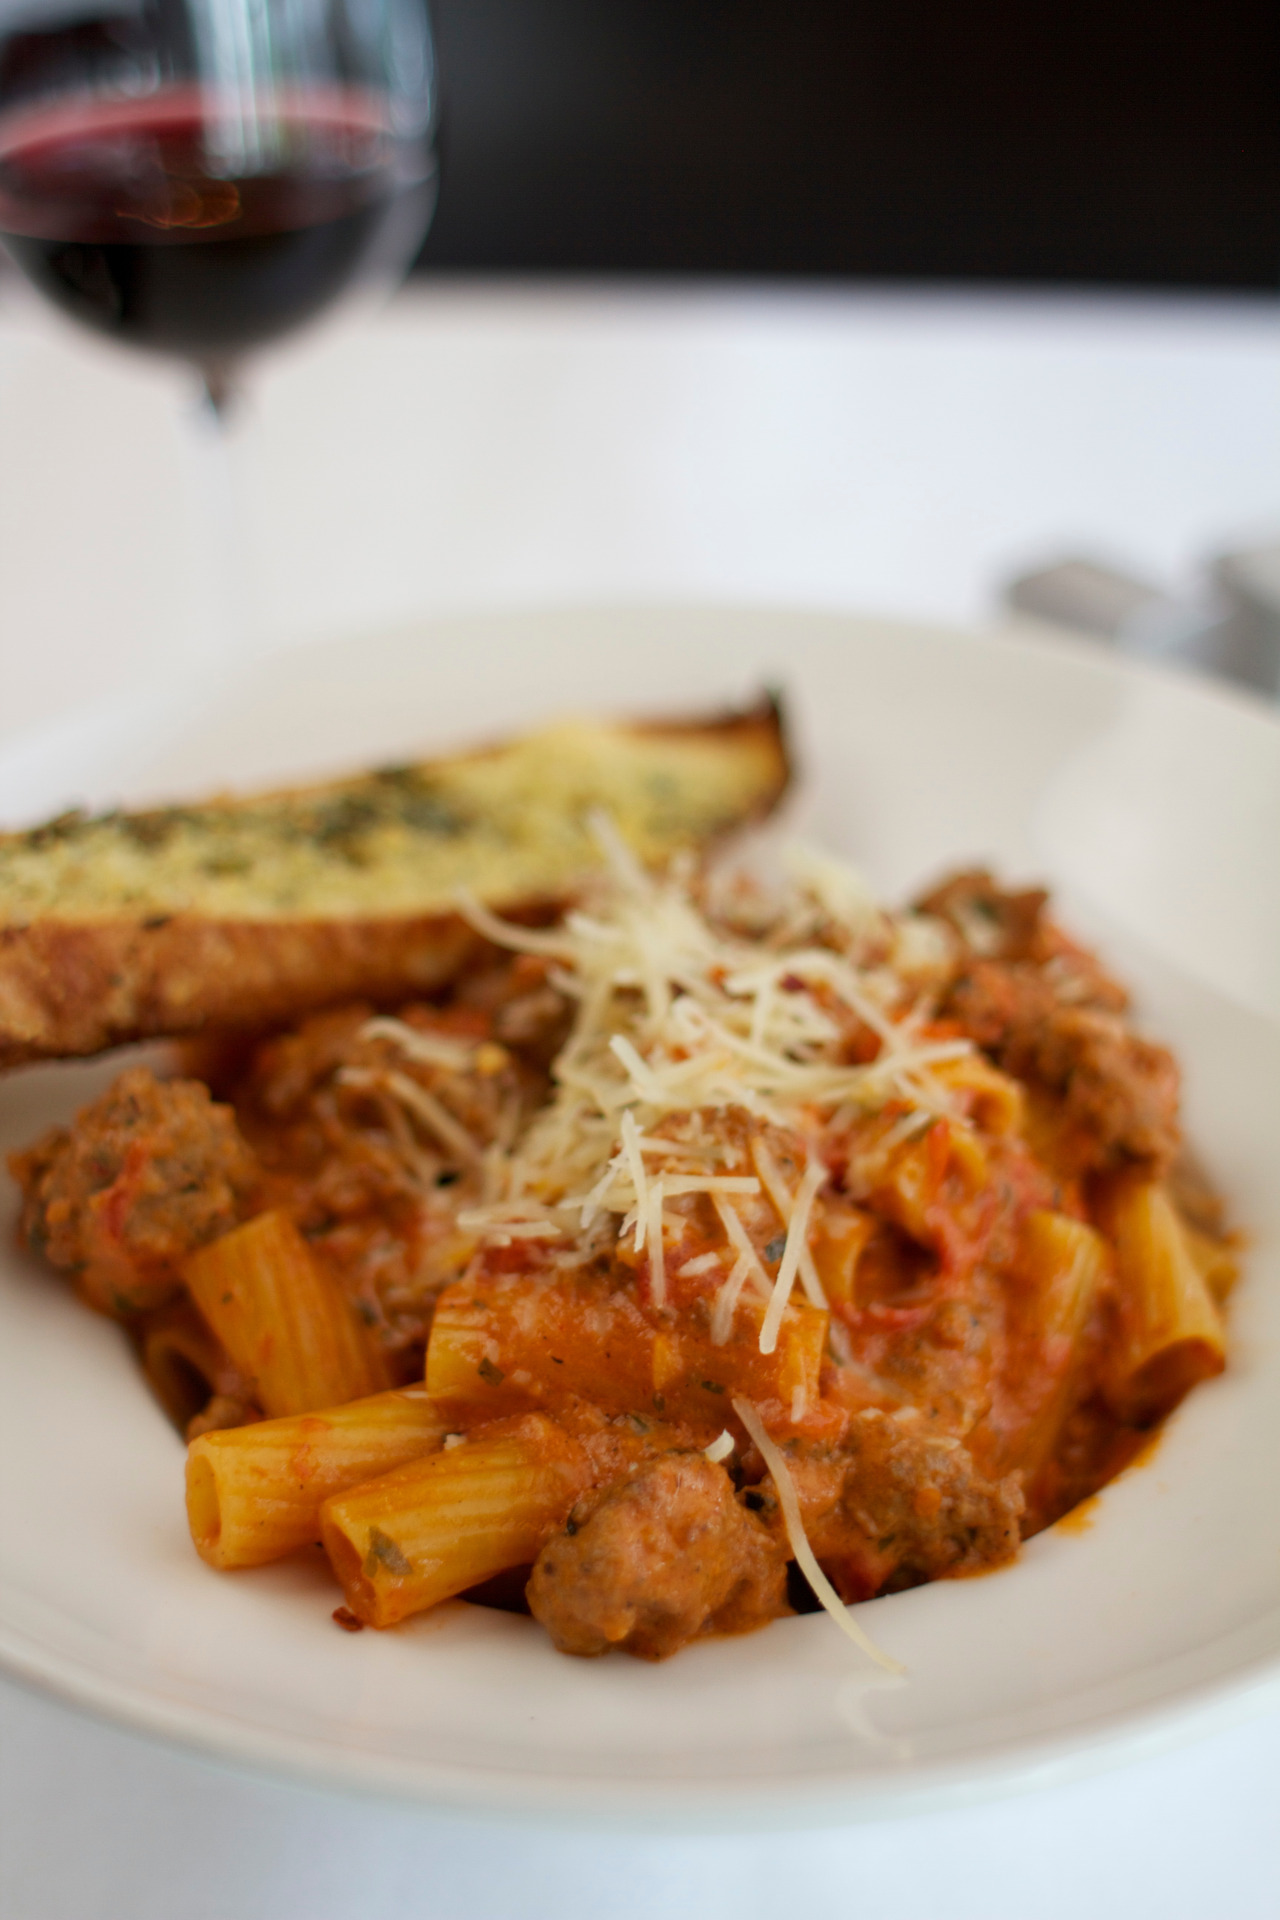 Palomino's  Rigatoni Bolognese (serves 4-6)    1/2lb     Uli's Famous Hot Italian Sausage    1/4tsp   Crushed Red Chili Pepper Flakes   1lb      Crushed Pair Tomatoes in Juice   2tbsp    Minced Parsley   2tbsp    Minced Garlic   1/4cup   Roasted Red Peppers (julienned)   2tsp     Dried Oregano   1cup    Heavy Cream   1 1/4lb   Rigatoni (cooked)   Salt and Pepper to taste   1. Brown  Uli's Famous Hot Italian Sausage  in a large pan over medium heat. Add tomatoes, garlic, chili pepper, red peppers, parsley, and oregano. Simmer uncovered for 20 minutes until slightly thickened.   2. Add heavy and bring to a simmer. Add cooked pasta and simmer to coat the noodles. Top with grated parmesan and minced parsley.   3. Enjoy with your friends and family. For those who need to do a little less spice try  Uli's Famous Mild Italian Sausage .